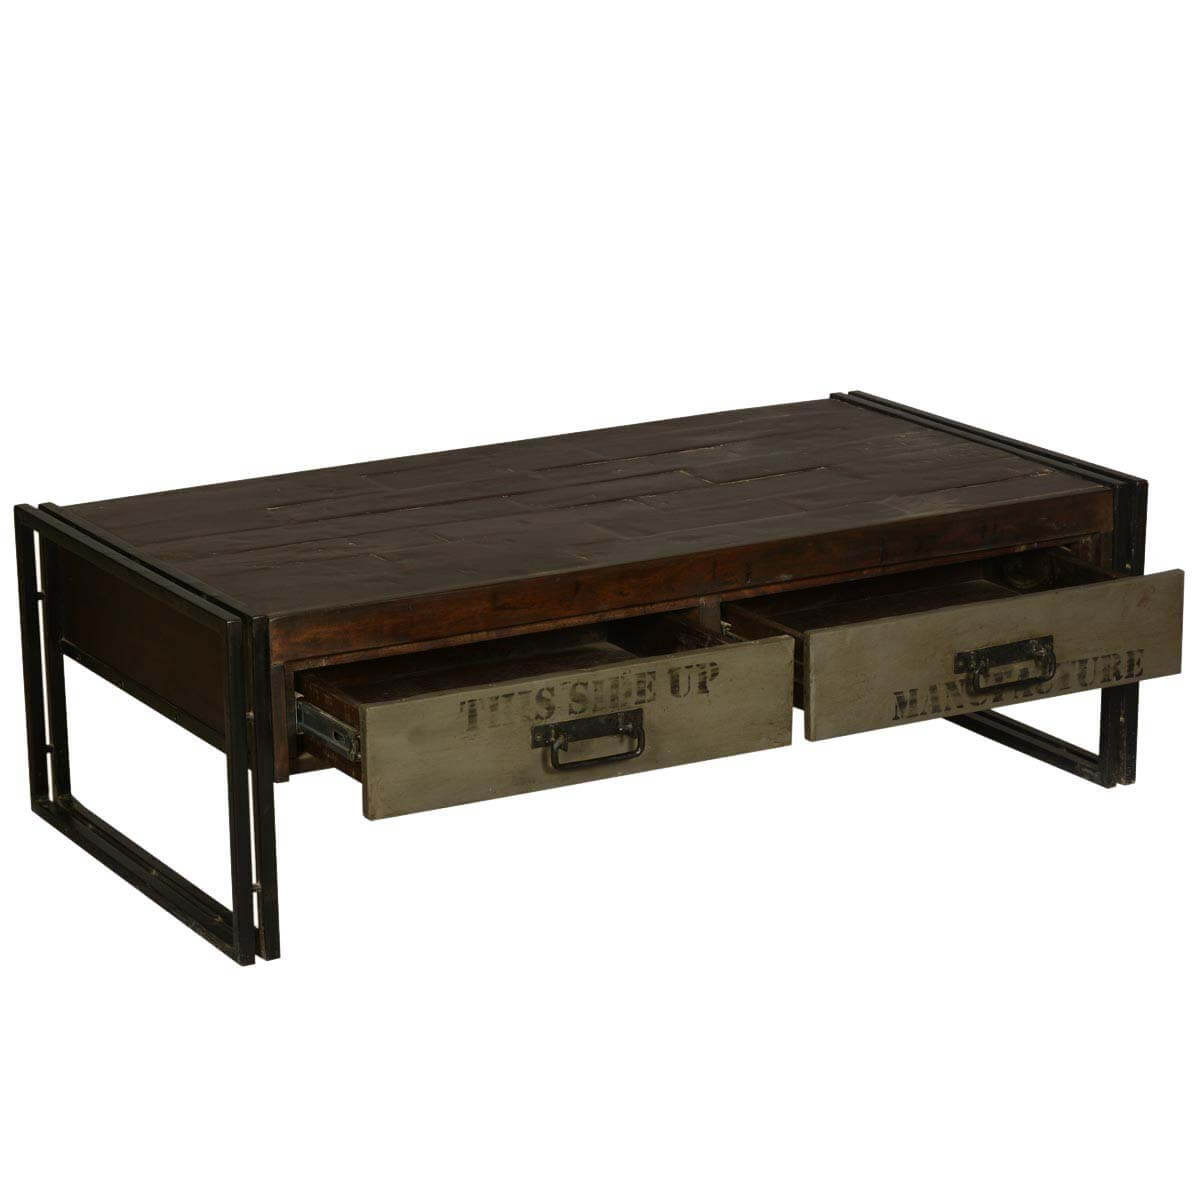 Rustic Wood And Metal Coffee Table 376 00 Rustic Wood Metal Coffee Table Coffee Side Master